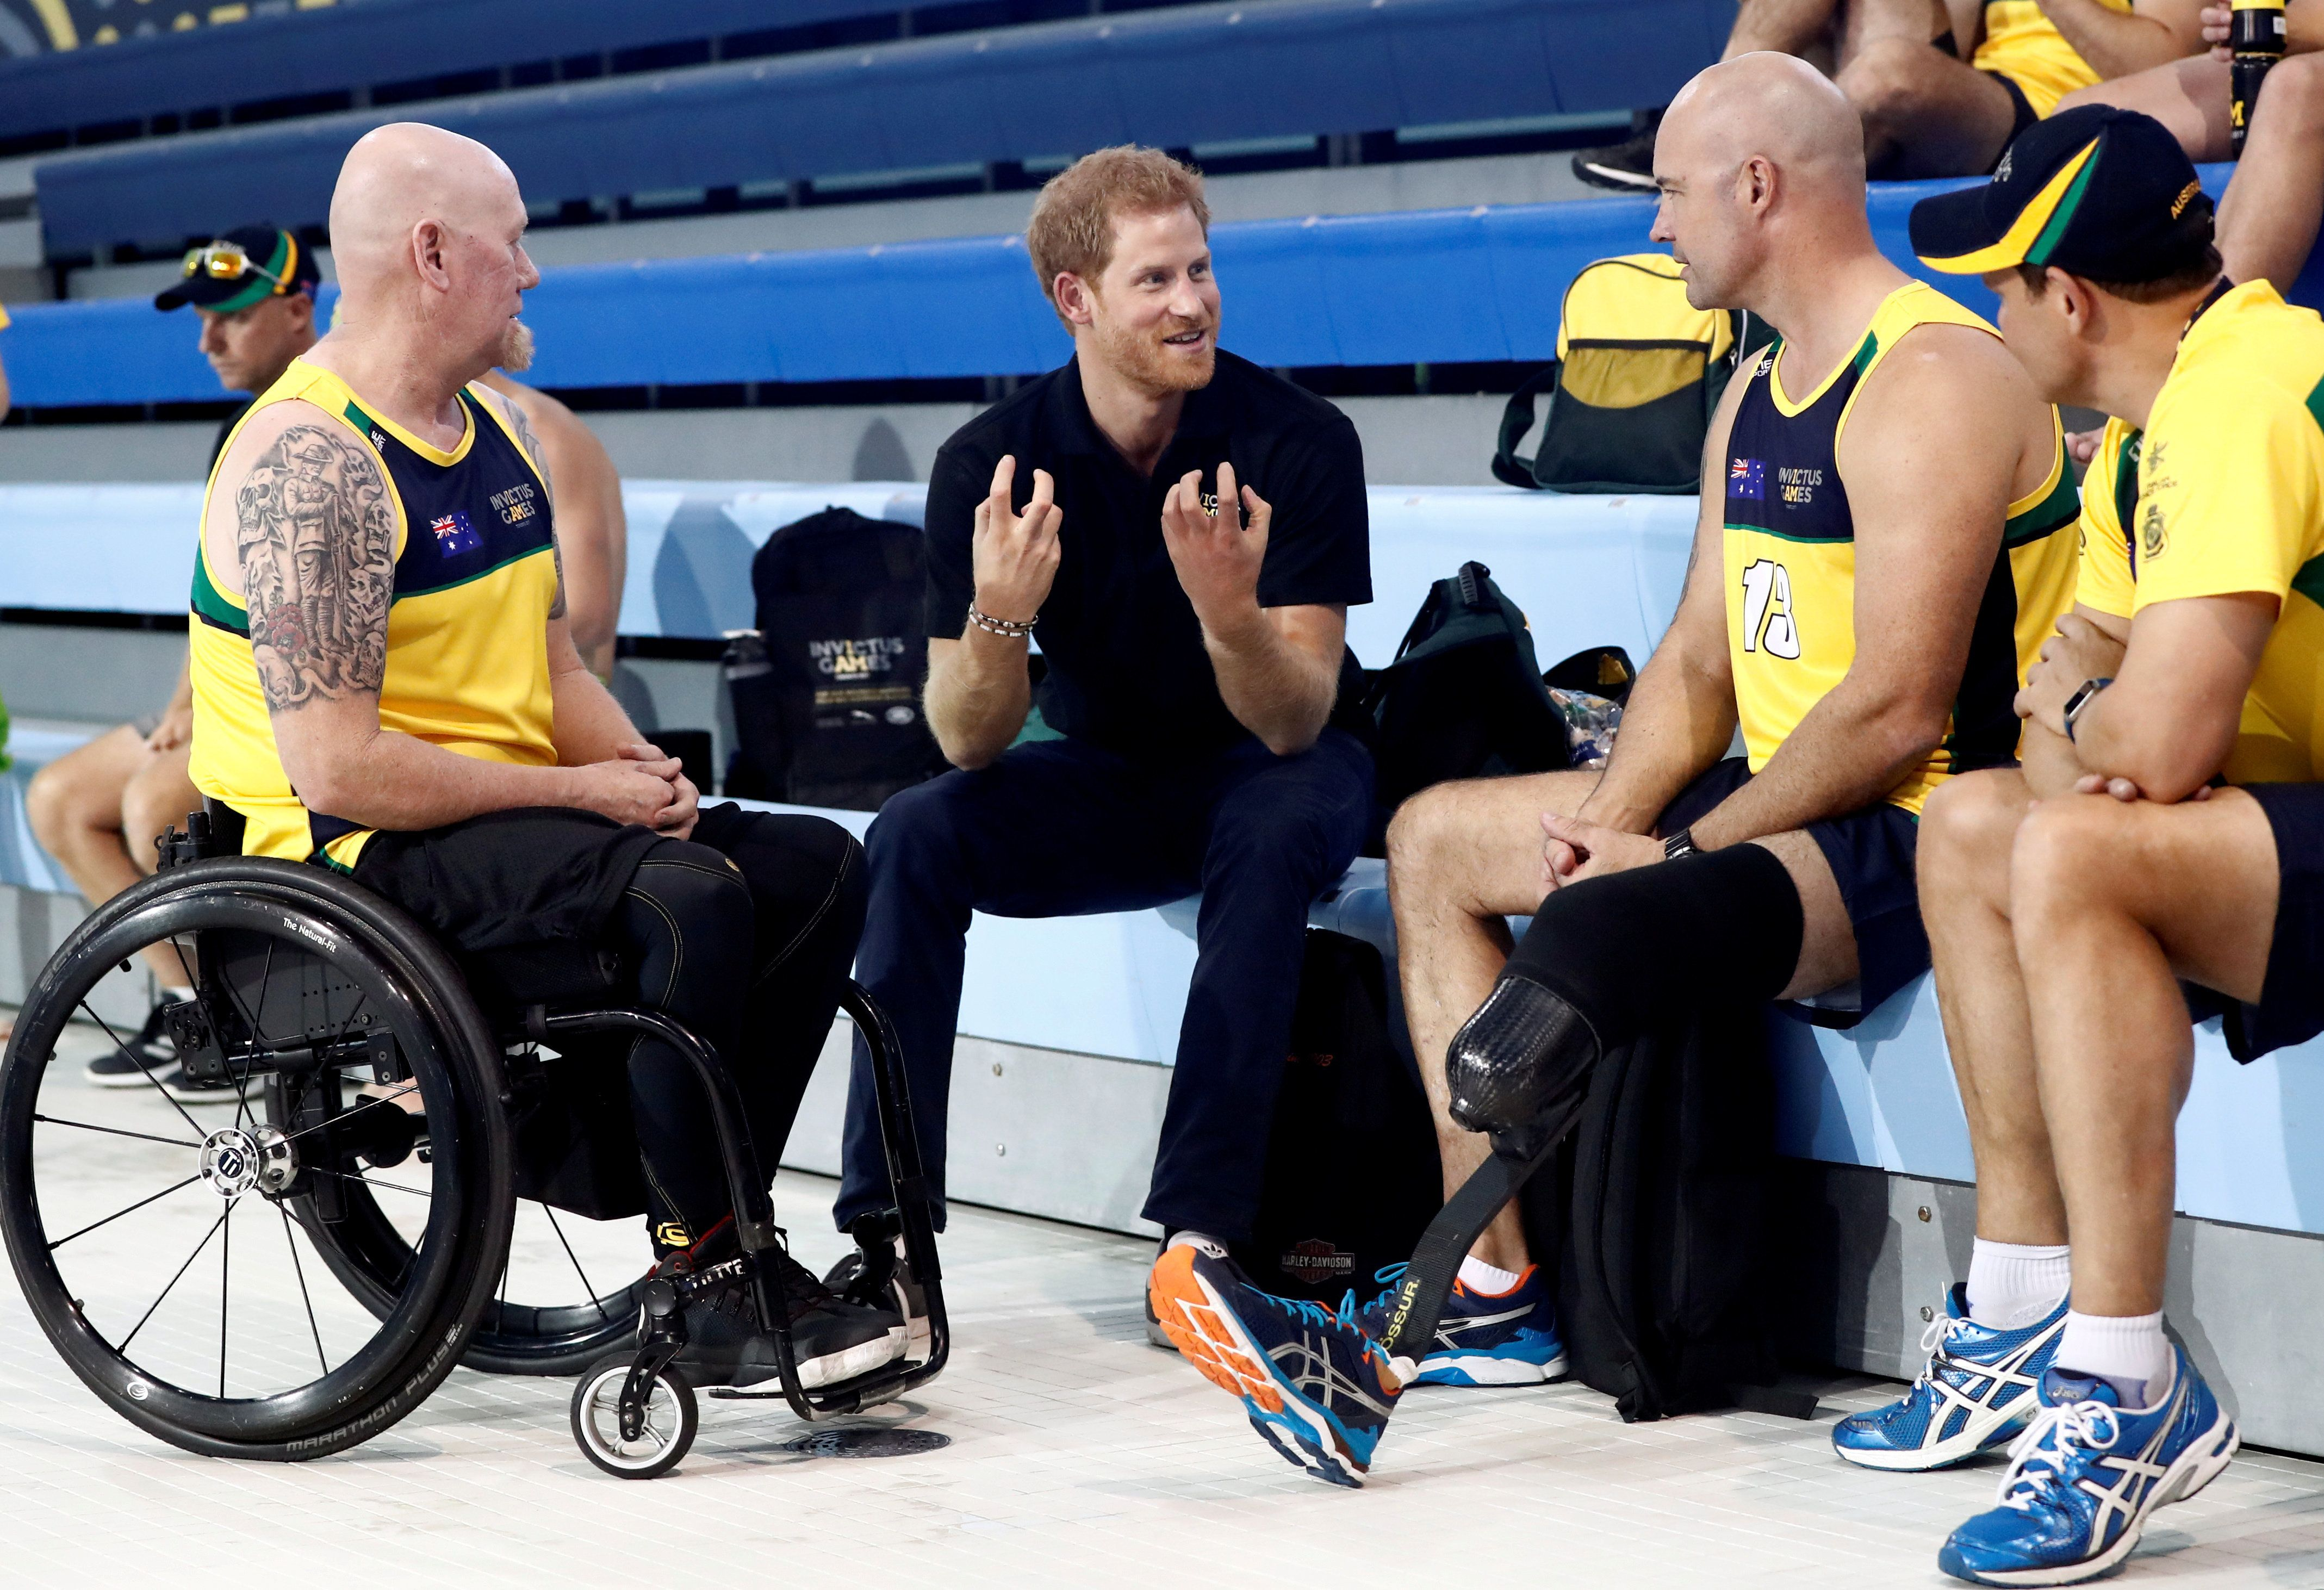 Britain's Prince Harry speaks to athletes at the Toronto Pan Am Sports Centre ahead of the Invictus Games in Toronto, Ontario, Canada, September 22, 2017.   REUTERS/Mark Blinch     TPX IMAGES OF THE DAY